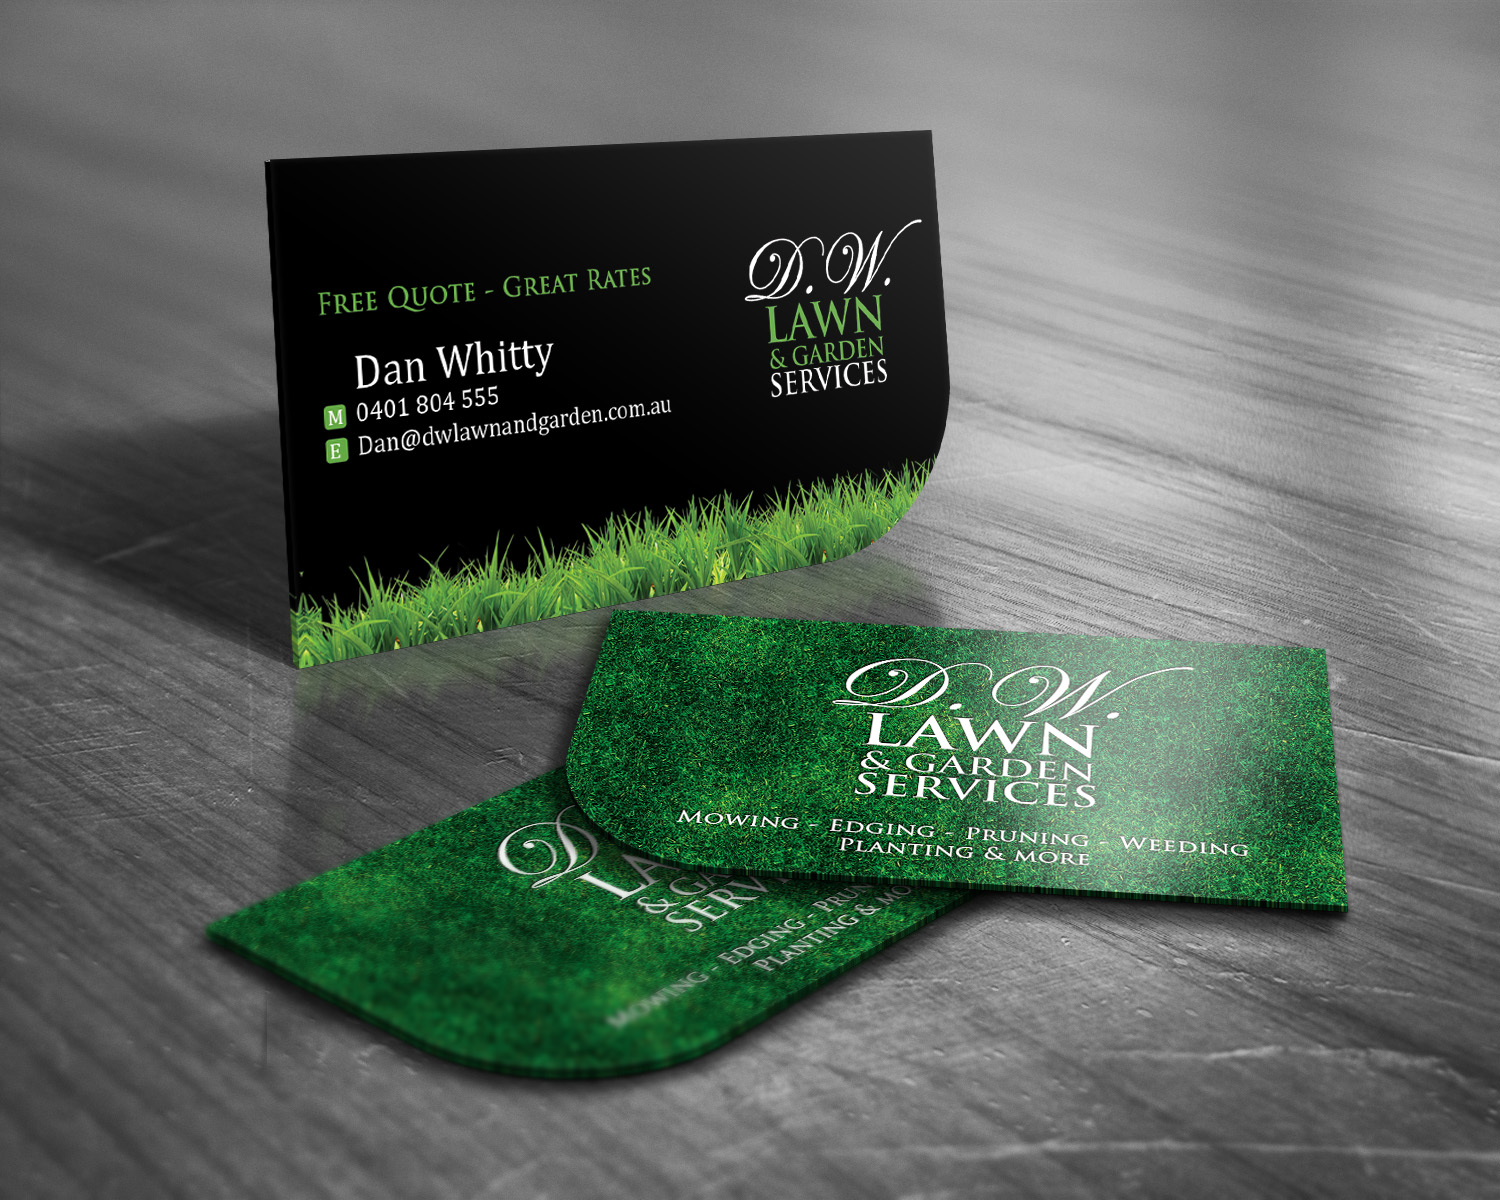 Garden Design Business Cards modern, bold business card design for d.w. lawn & garden services